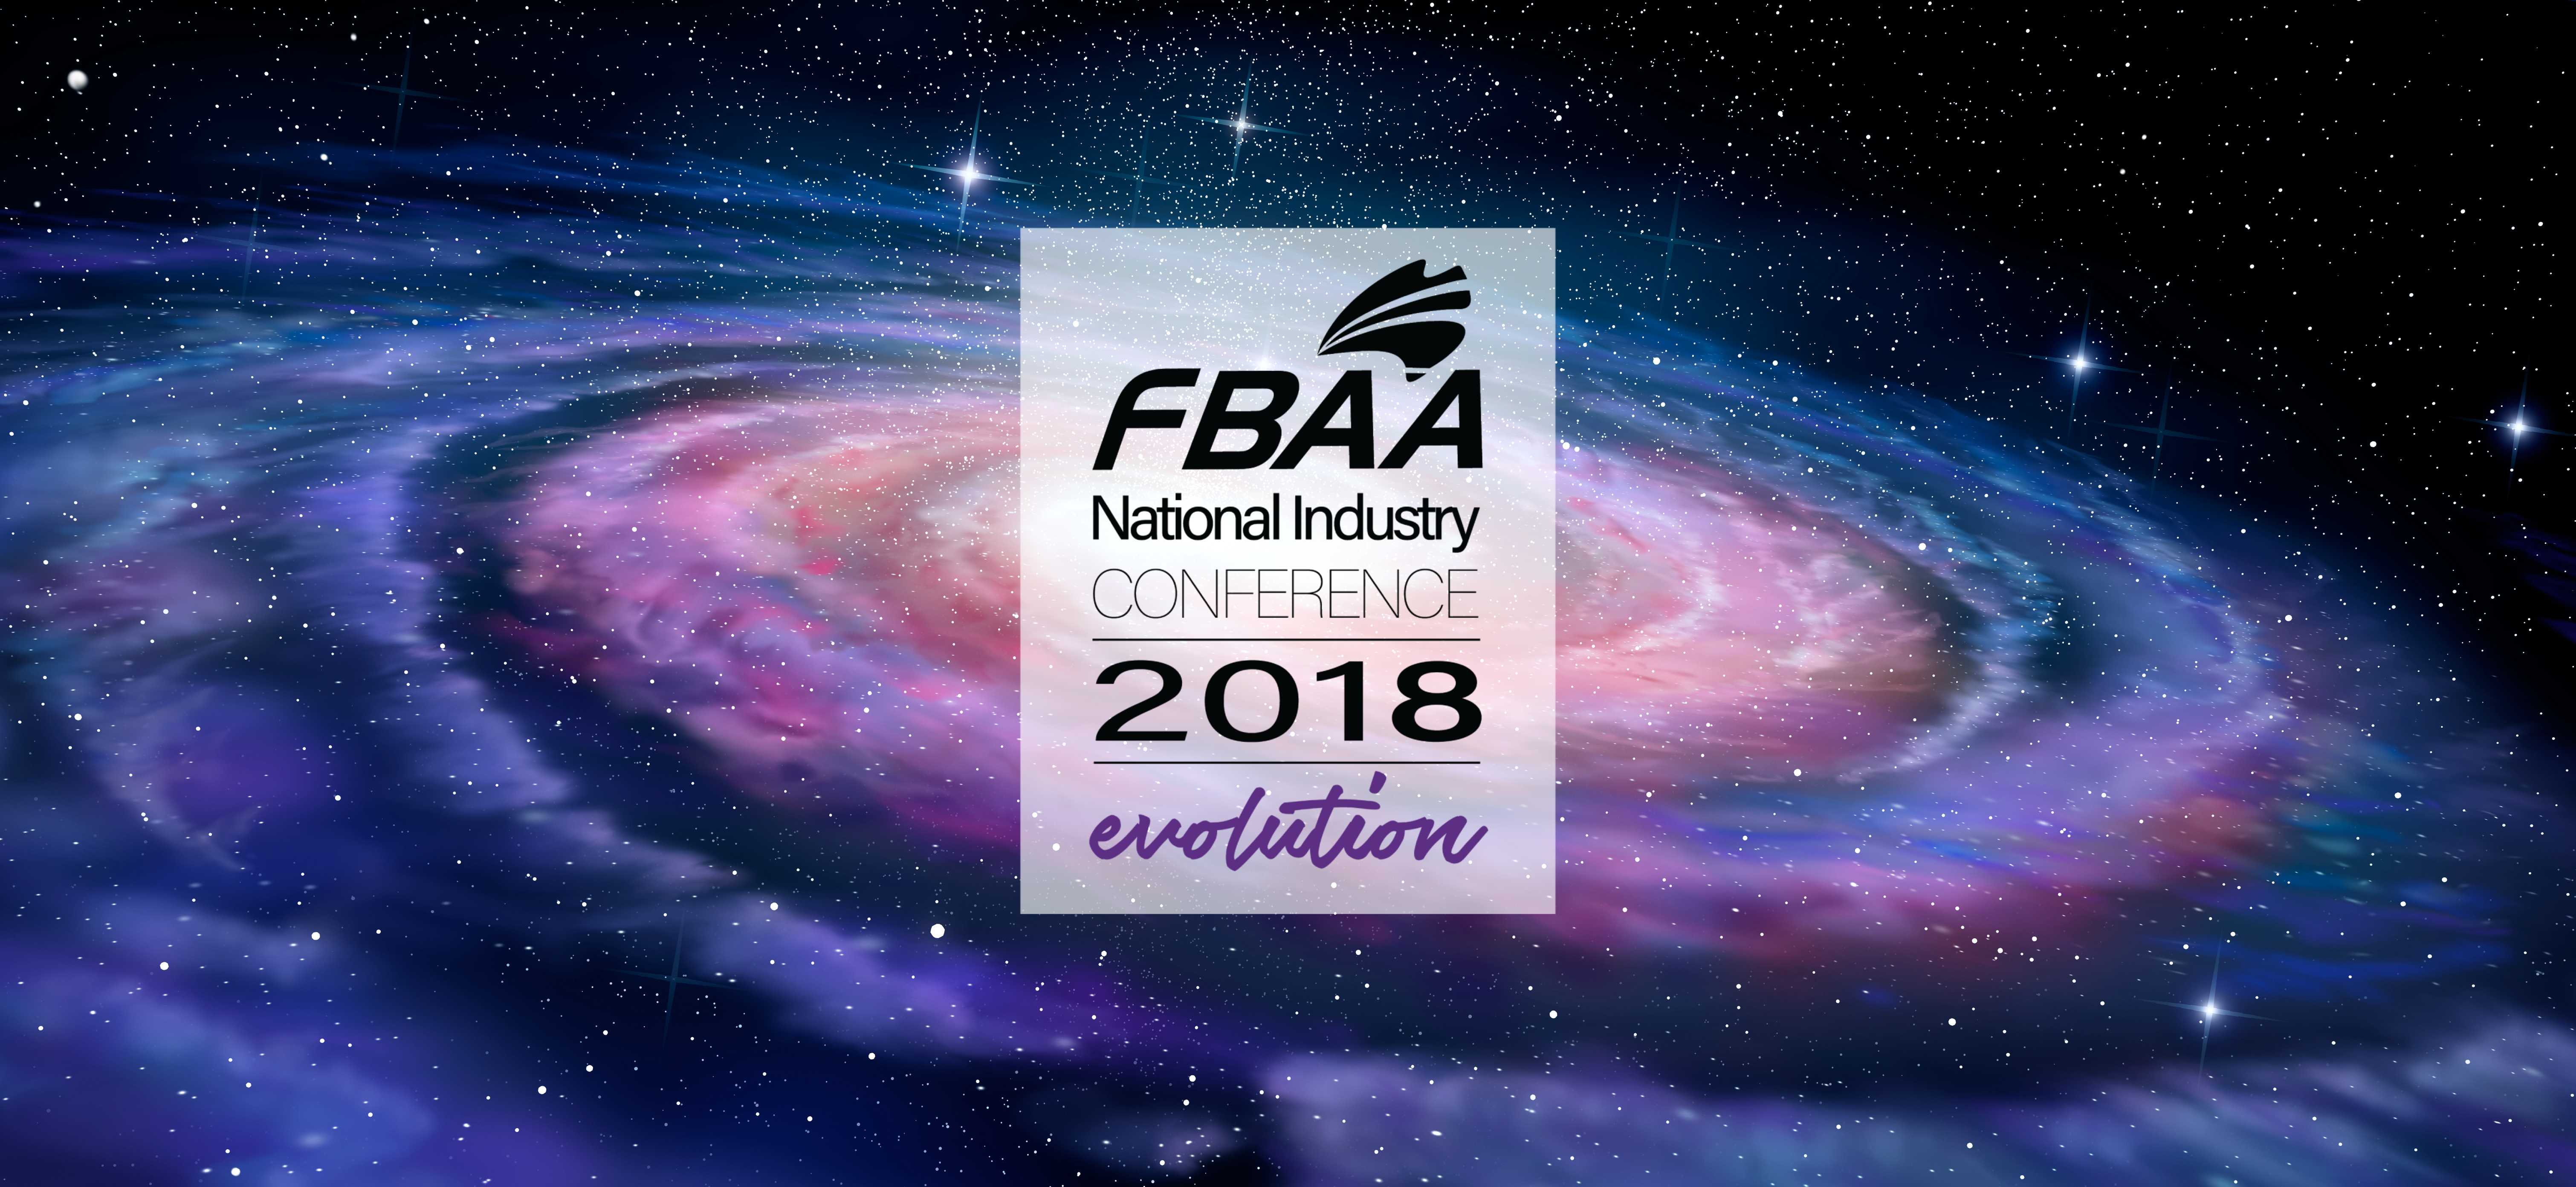 FBAA 2018 National Industry Conference  and Gala Dinner- Evolution